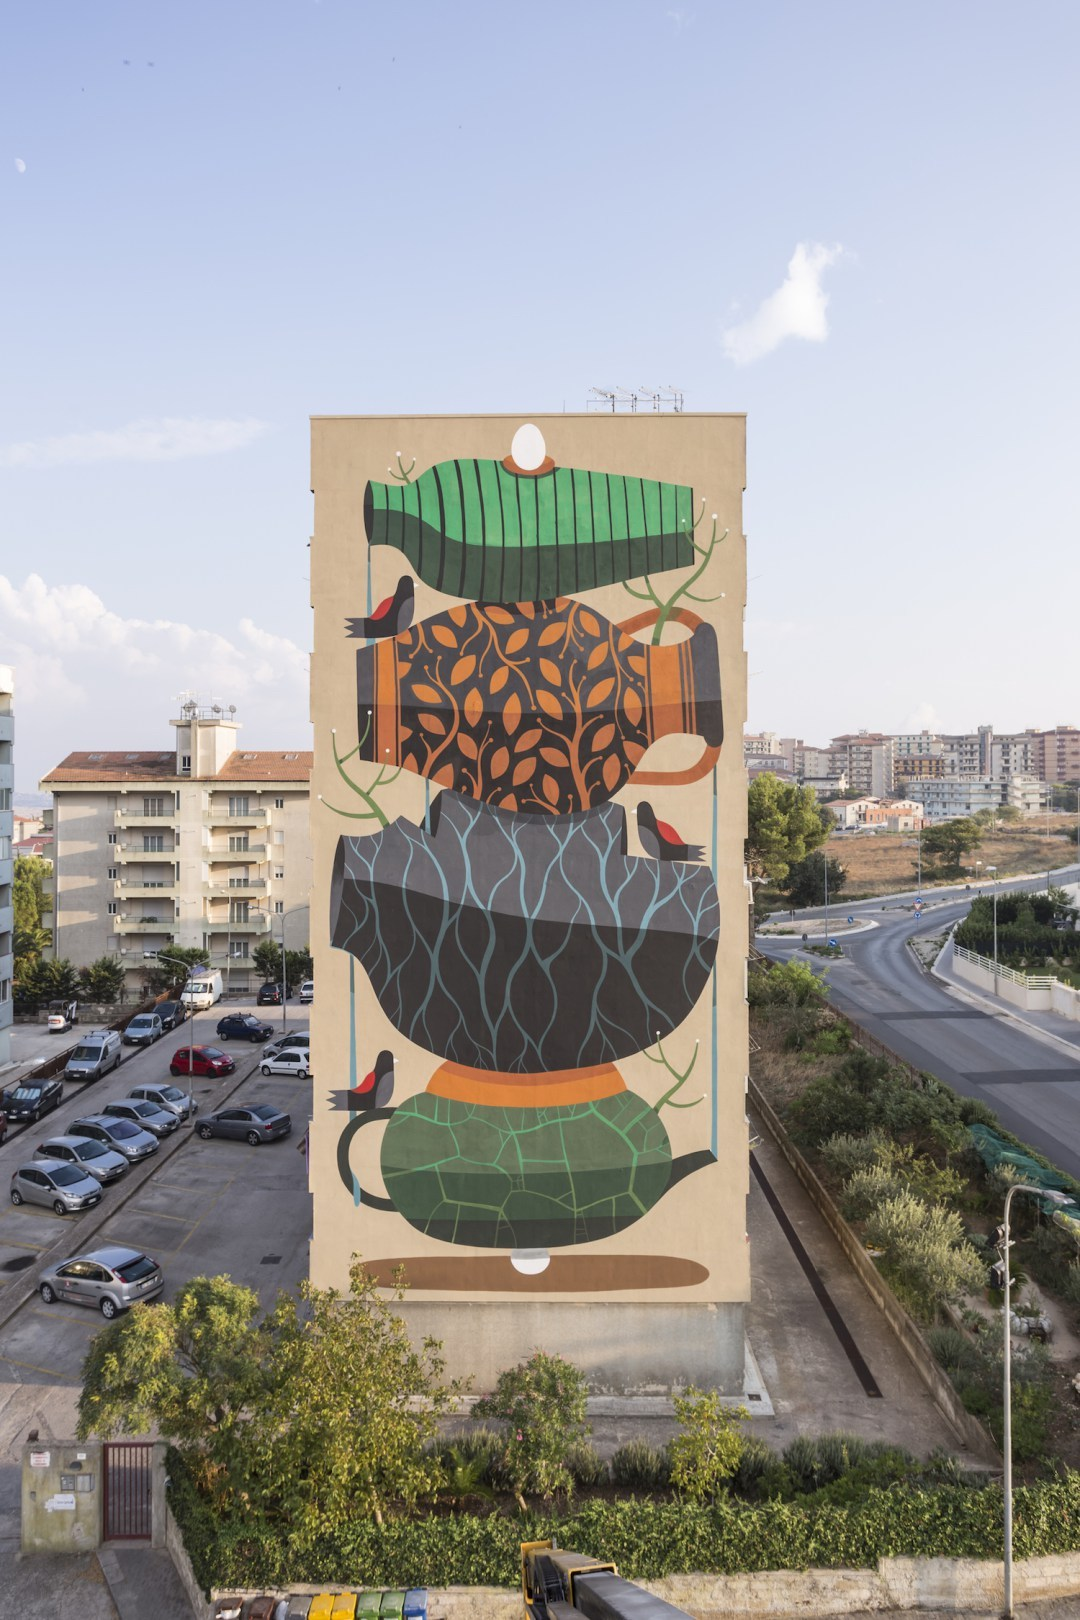 Mural paintings by artist Agostino Lacurci